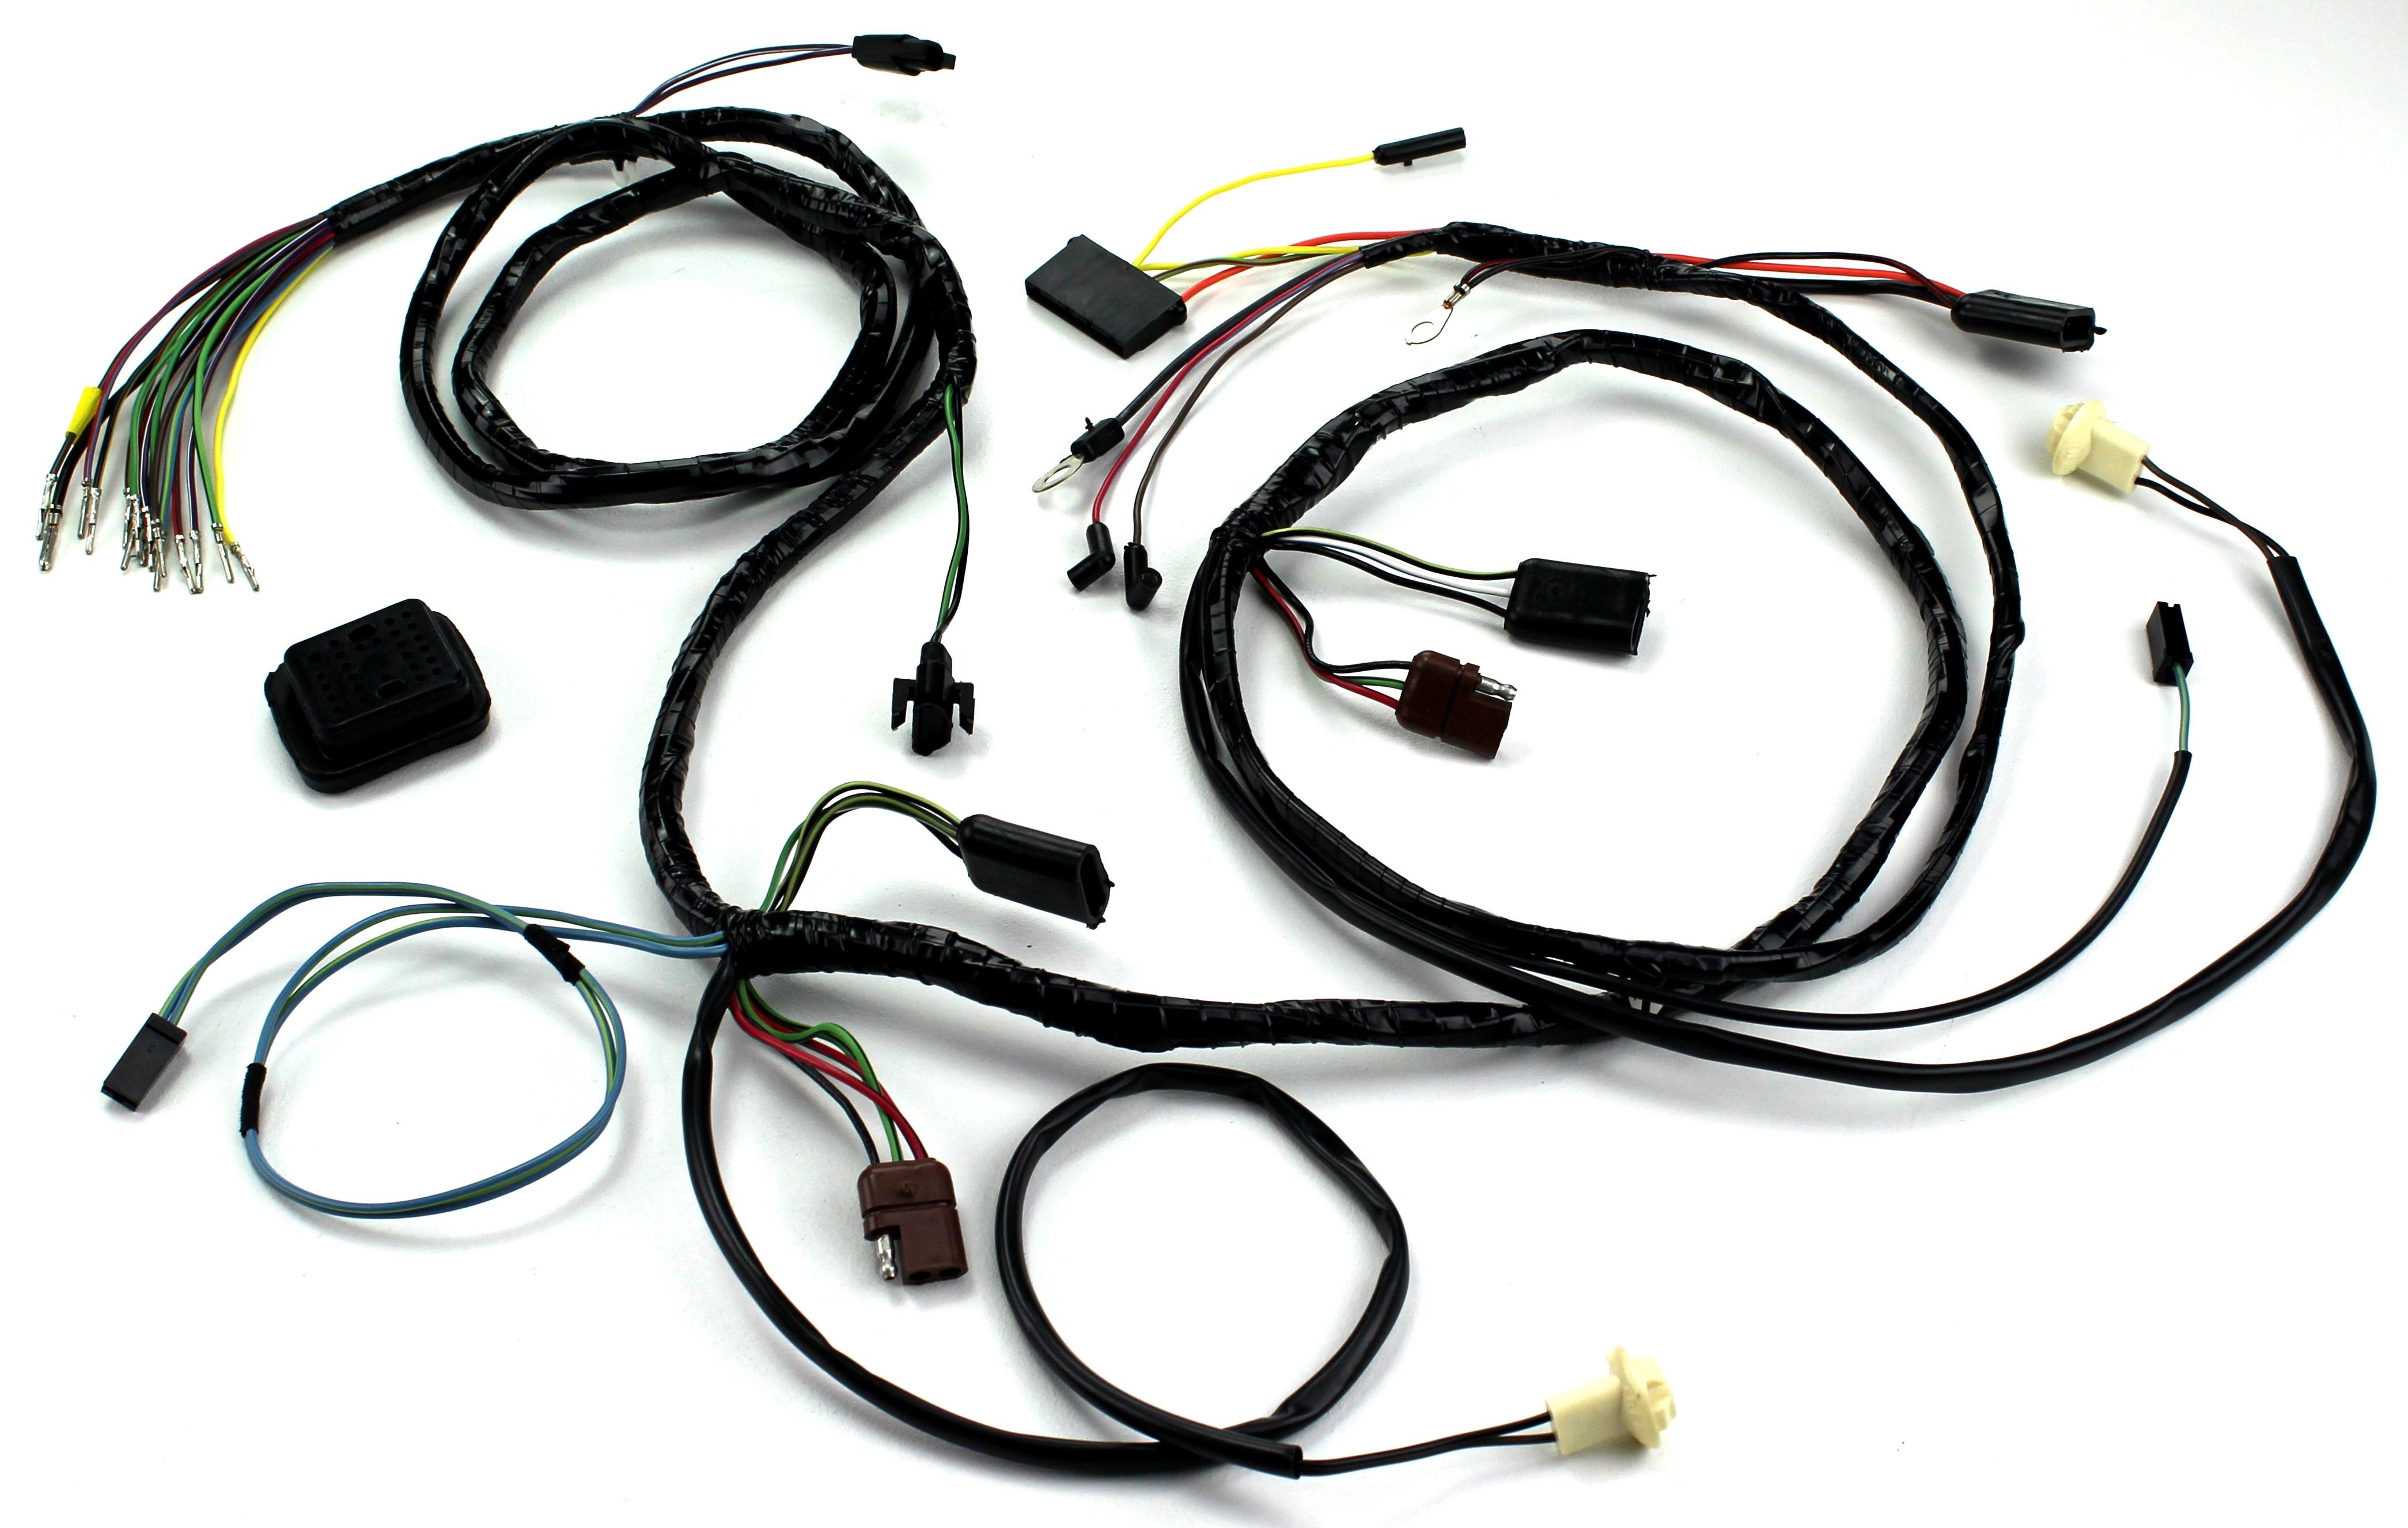 1969 mustang wiring harness head light wiring harness w o tach 1969 alloy metal products  head light wiring harness w o tach 1969